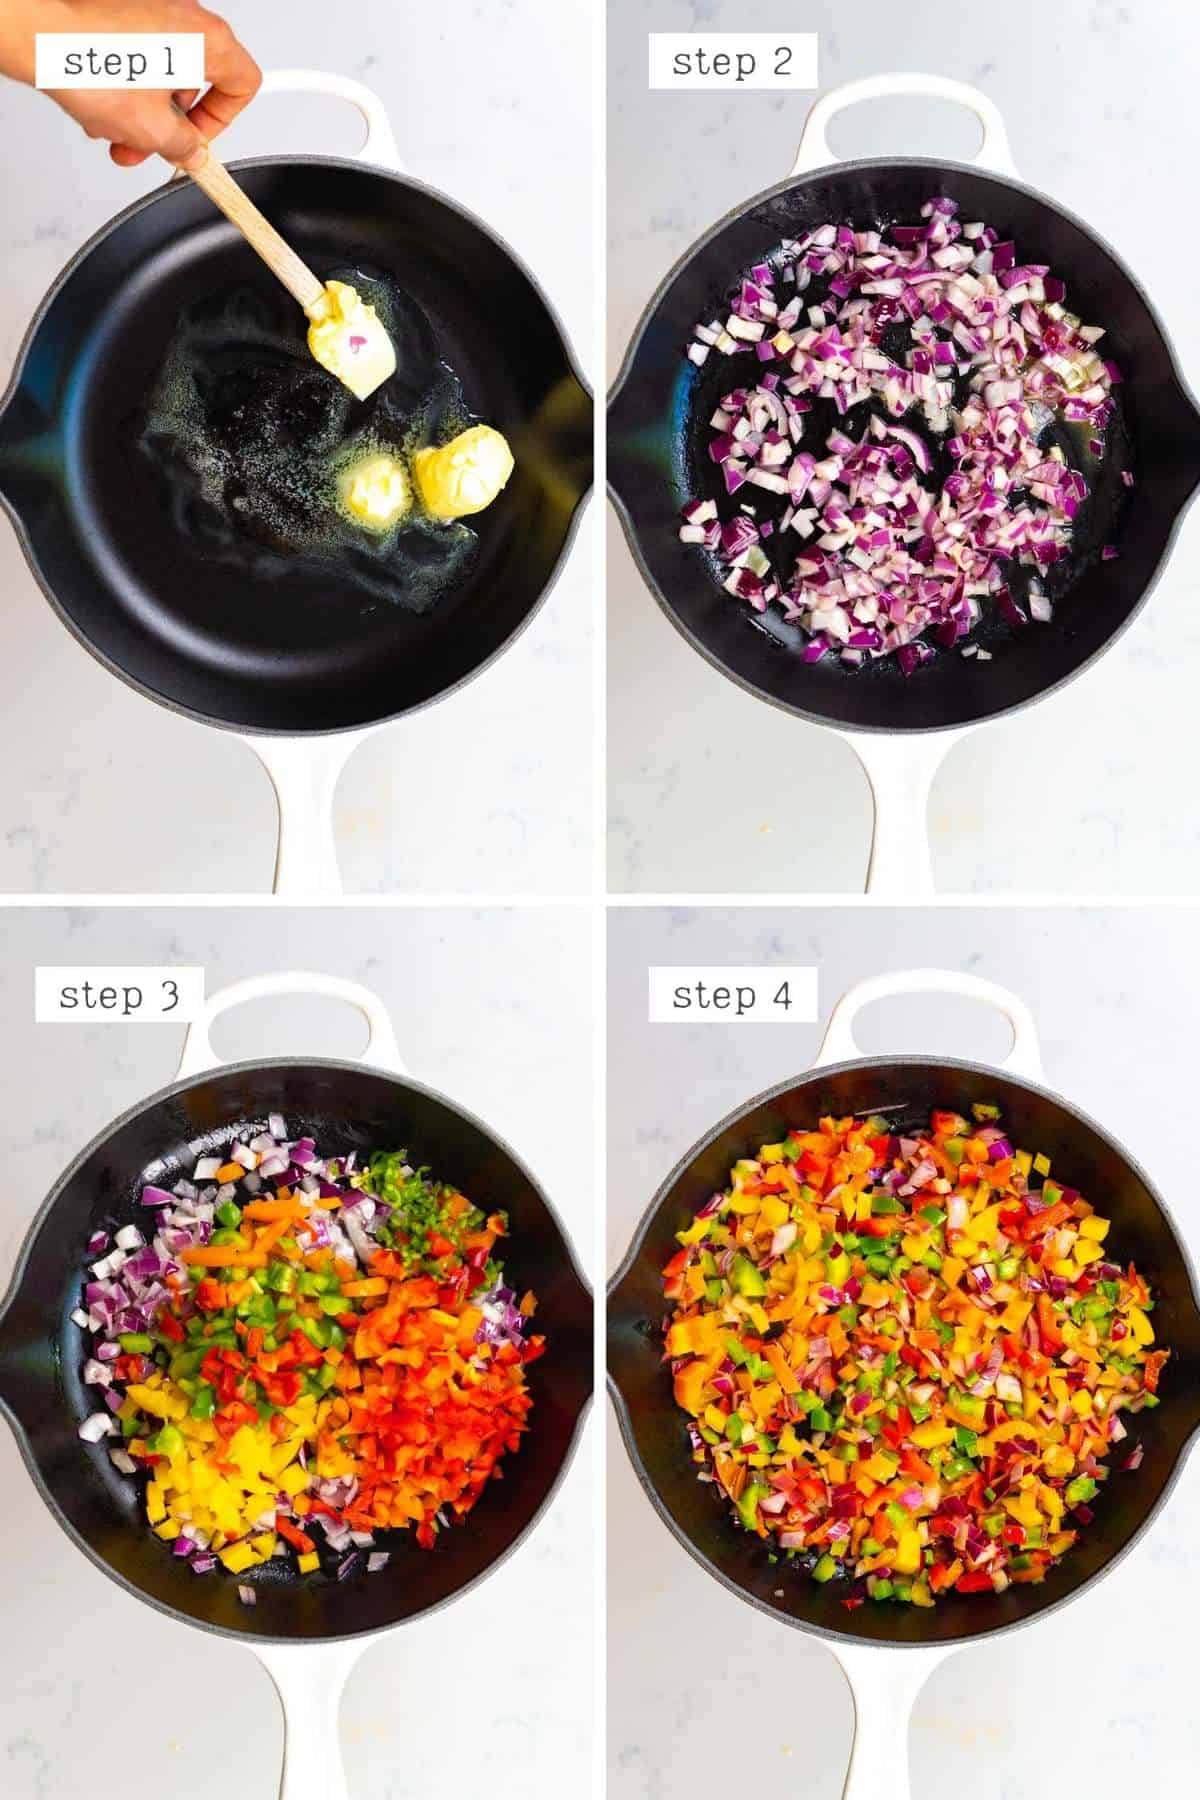 steps for sauteing veggies in a pan for omellete